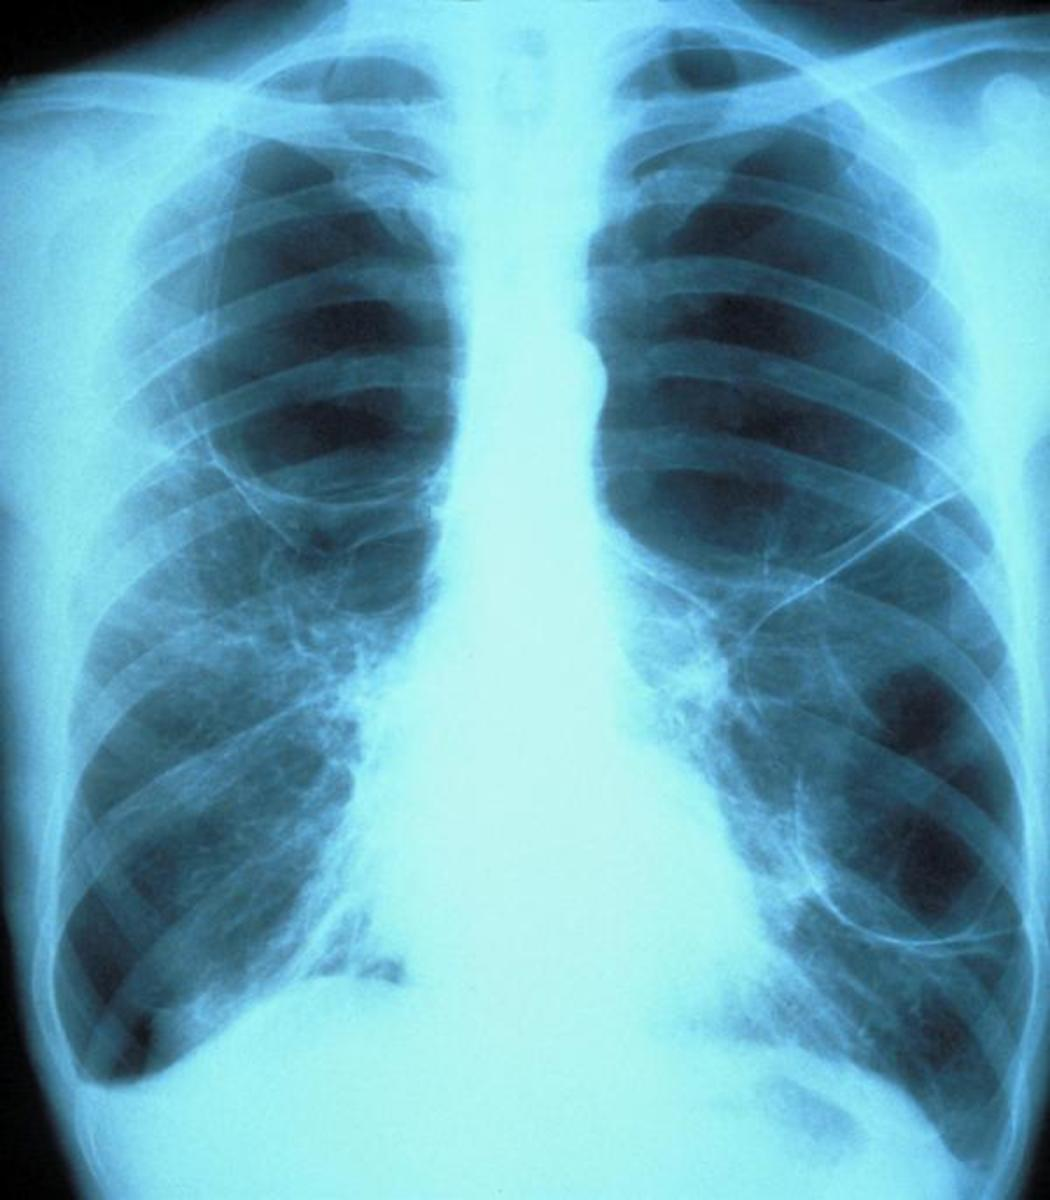 Bacterial and viral cases of pneumonia usually present with similar symptoms. Some causes are associated with classic, but non-specific, clinical characteristics.